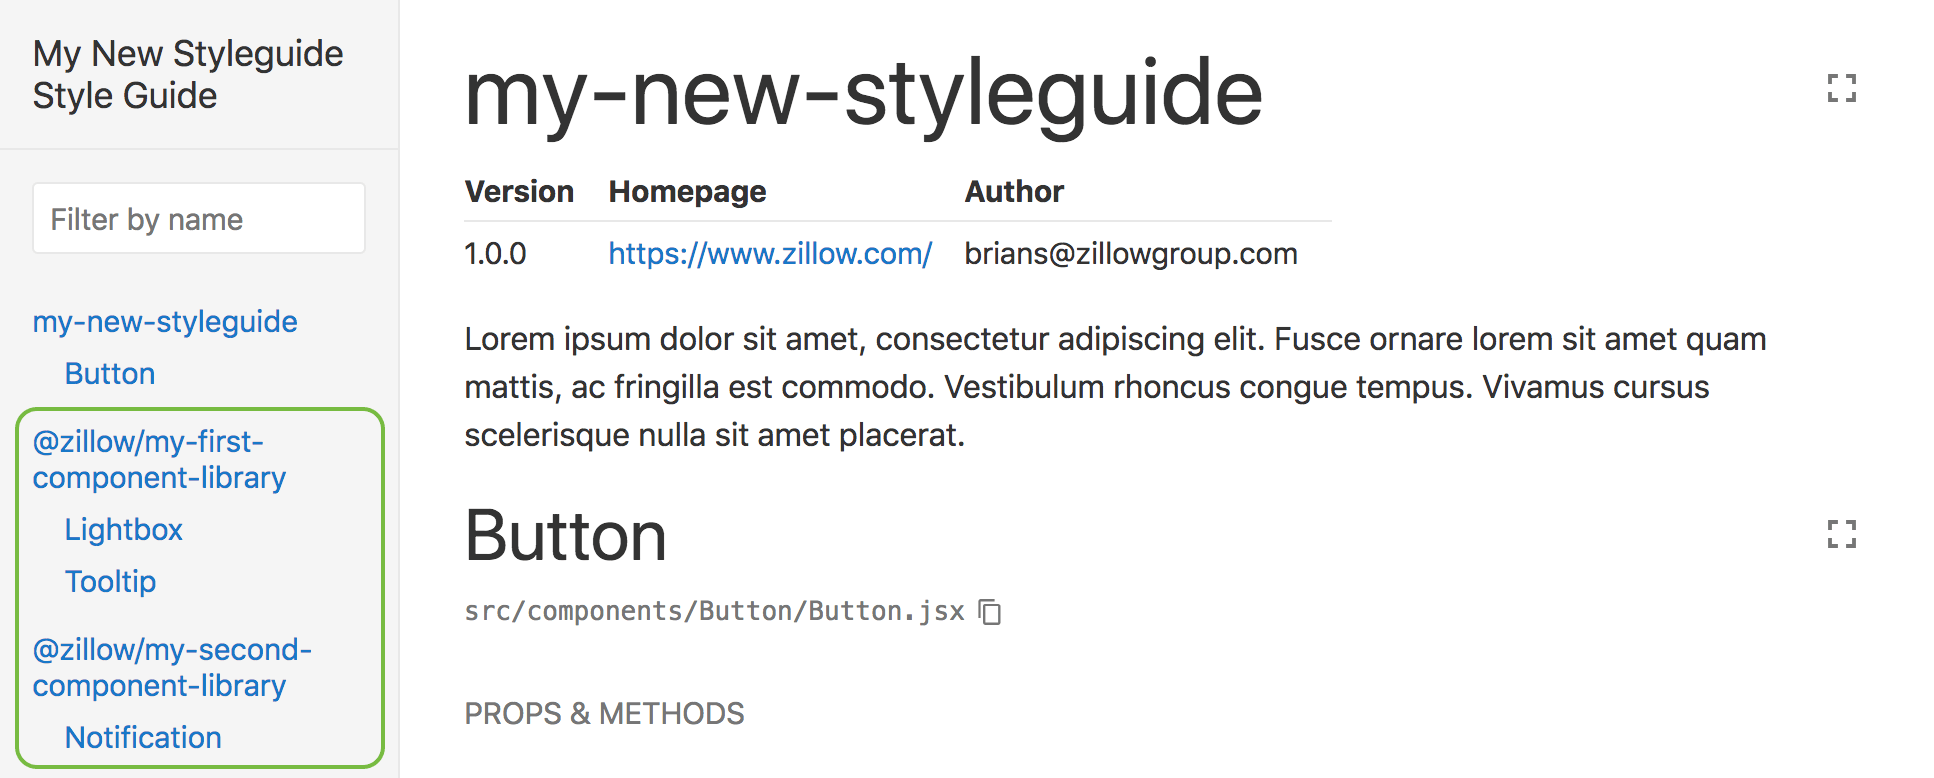 Linked style guide